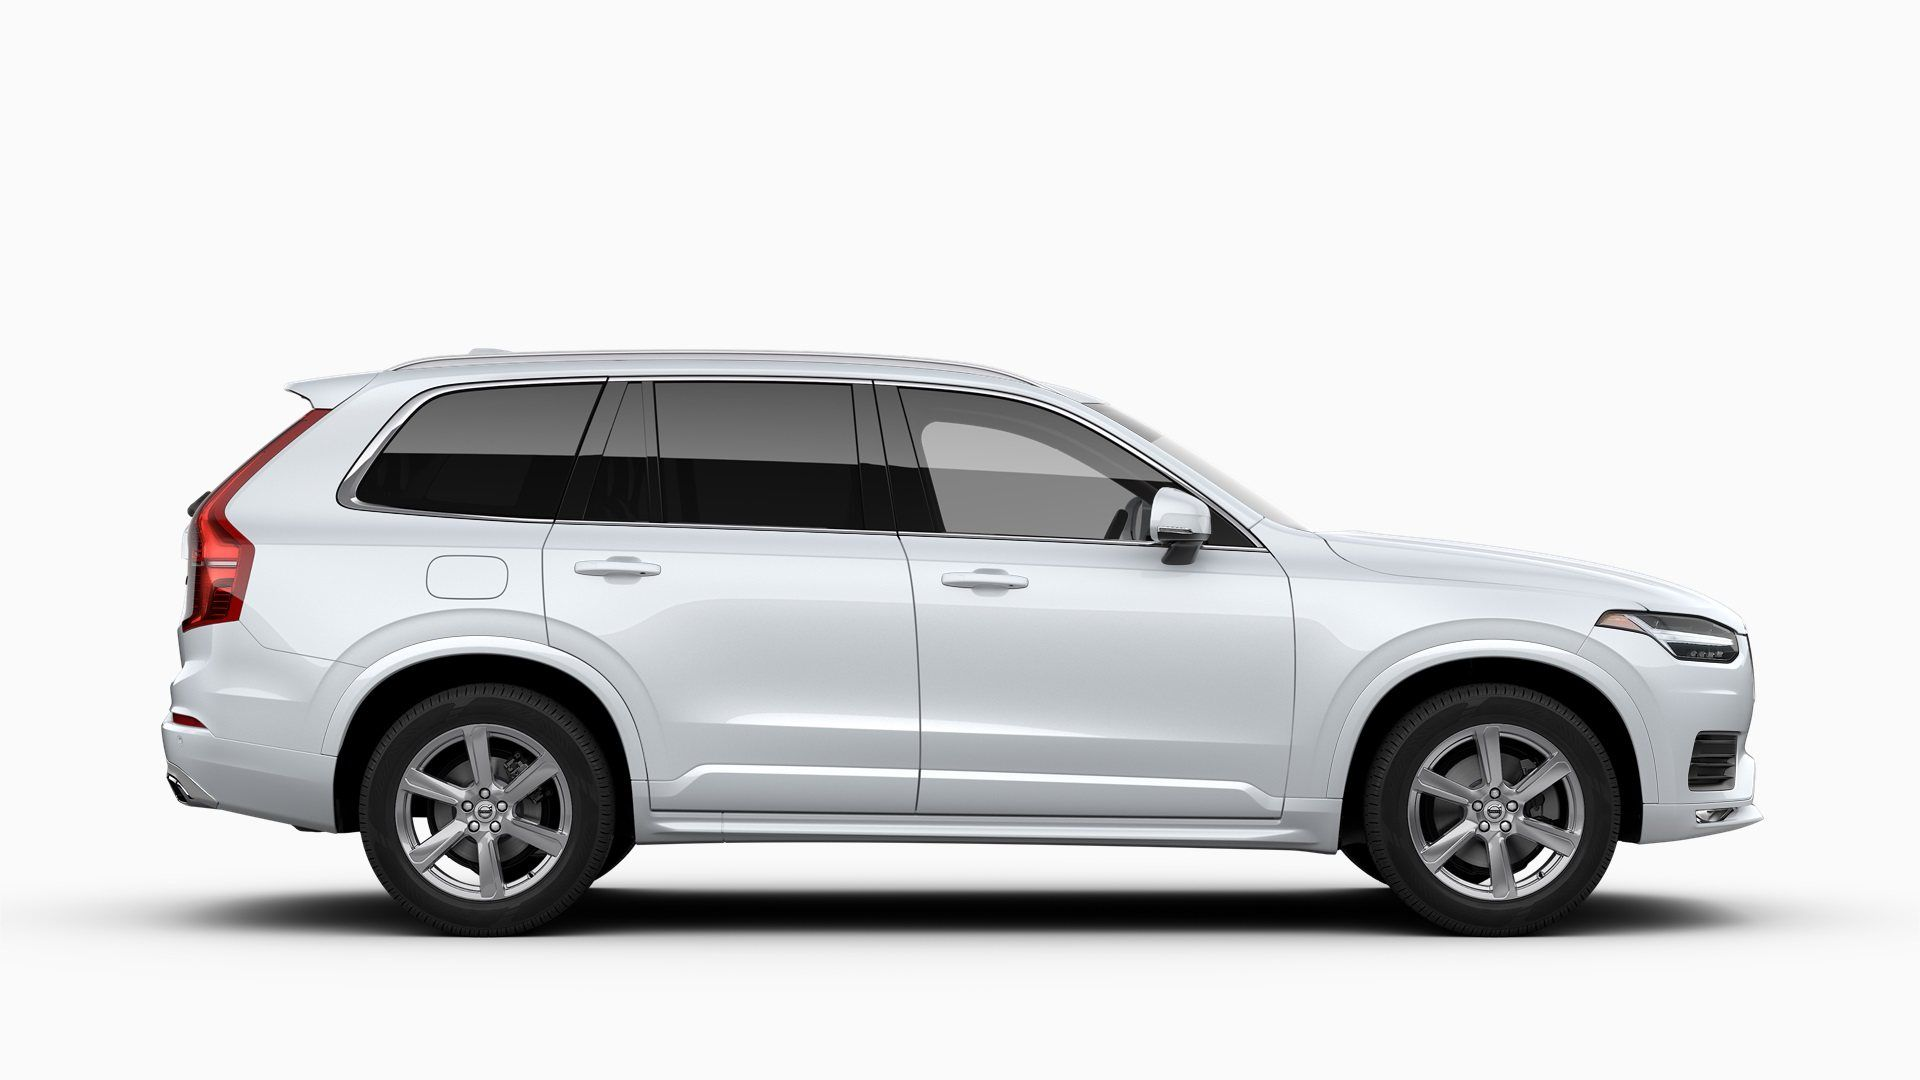 2021 Volvo Xc70 New Generation Wagon Configurations in